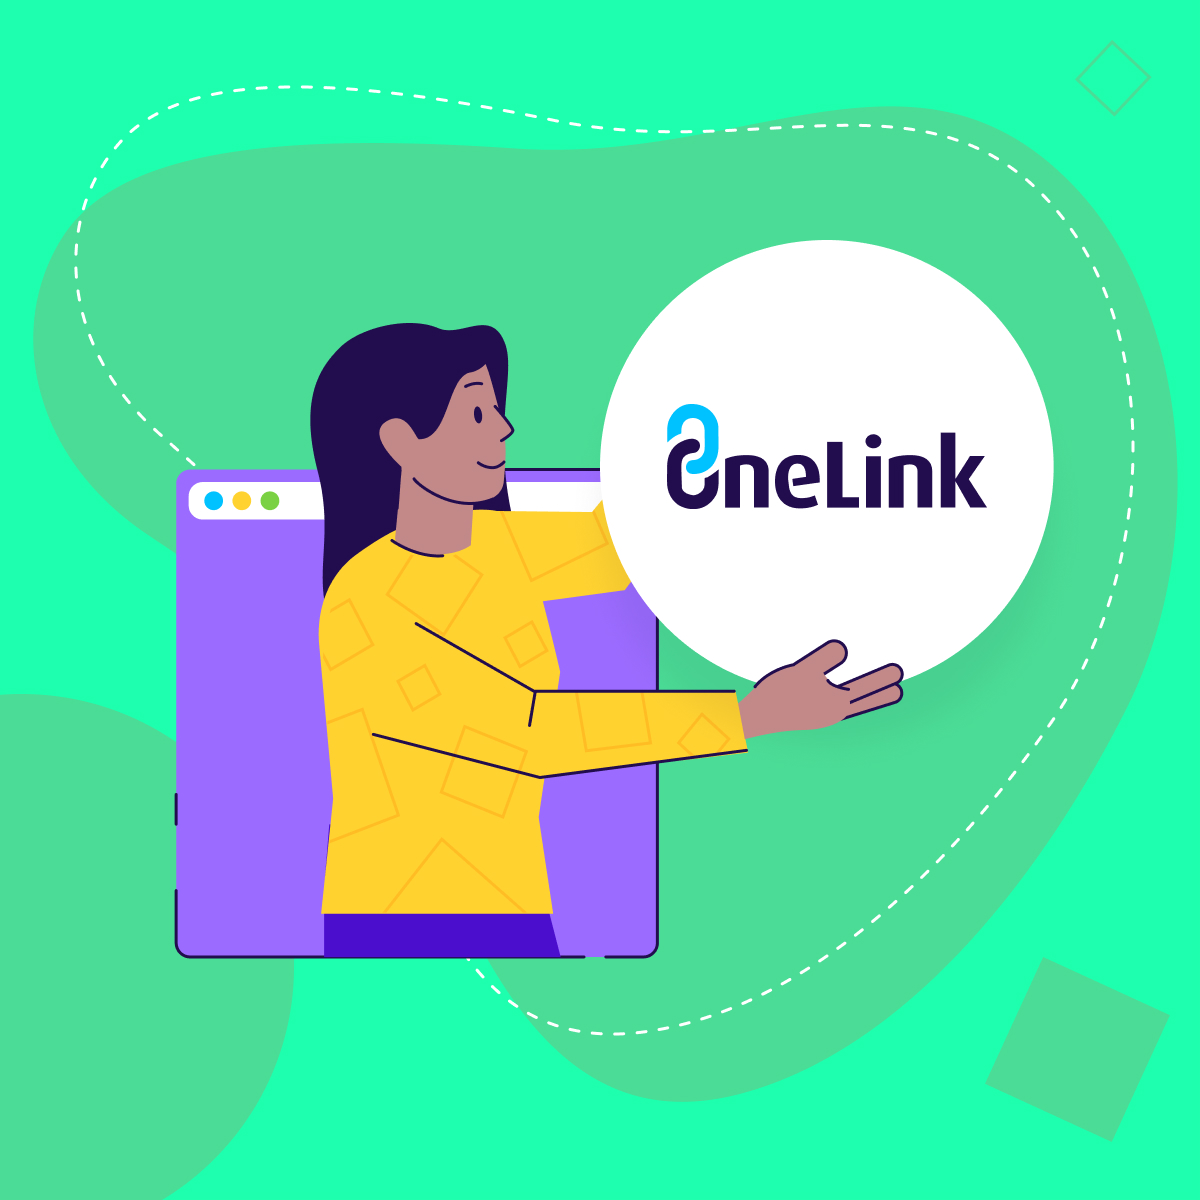 onelink now does more